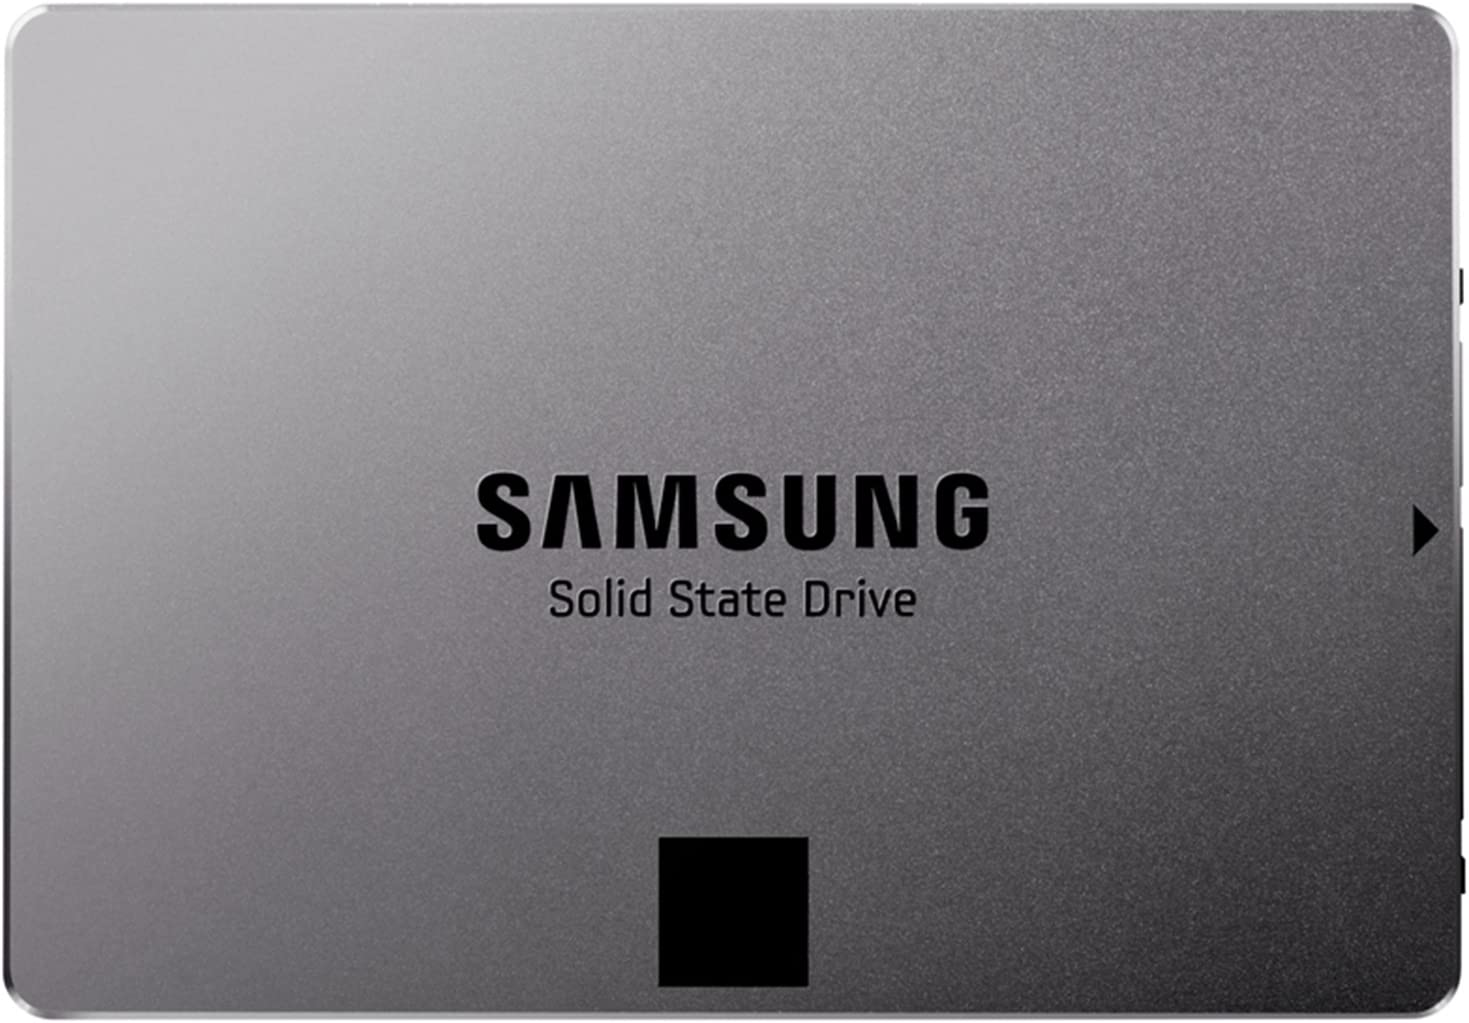 Samsung Electronics 840 EVO-Series 500GB 2.5-Inch SATA III Single Unit Version Internal Solid State Drive MZ-7TE500BW